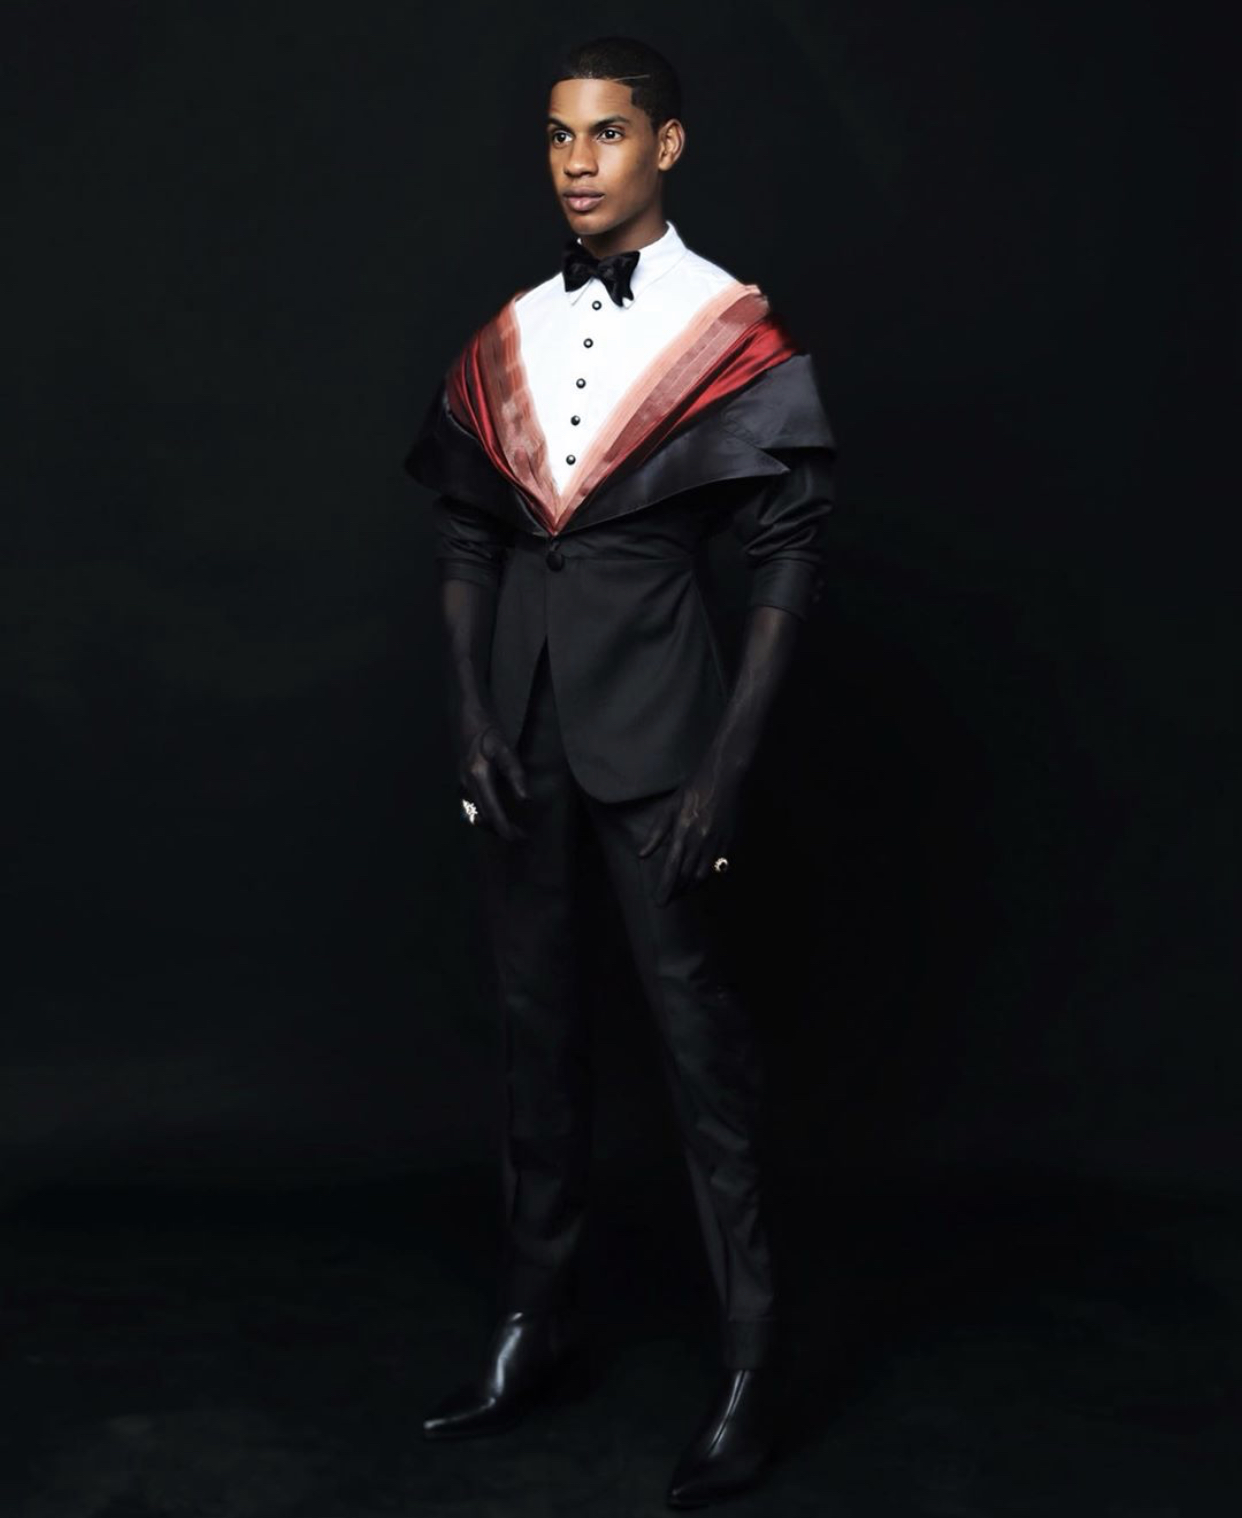 2020-amvcas-best-dressed-men-theravelist